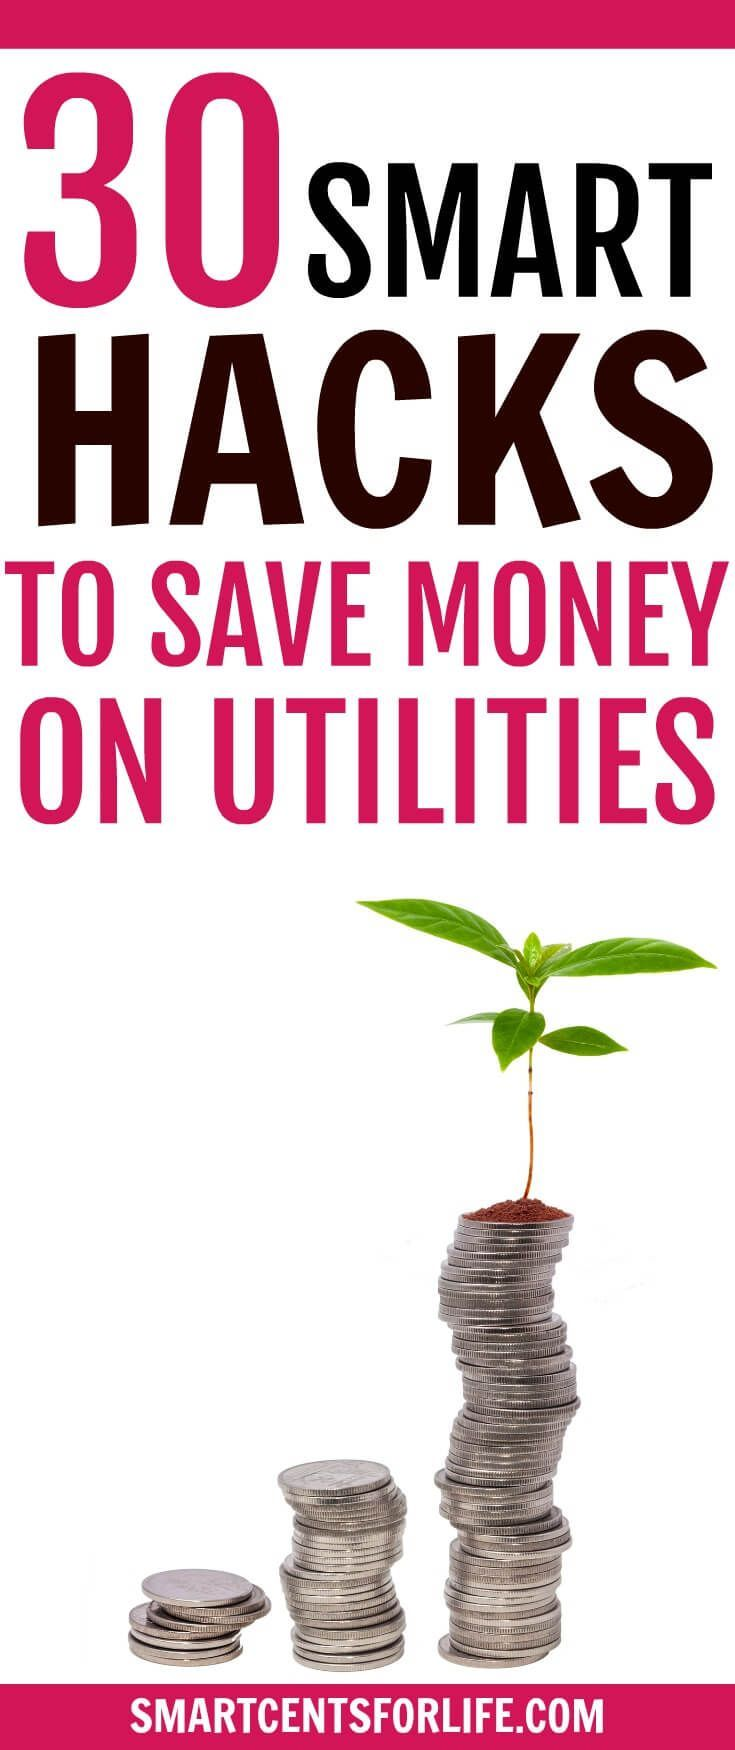 Are you looking to save money on your utility bills? Here are 30 smart ways to lower your utility bills at home! By implementing these simple tips around your house, you will be able to lower the costs of your utility bills at home and save hundreds of dollars per month! money saving ideas, ways to save money, tips to save money on utility bills, frugal living tips, how to save money on utilities, save money on bills, budget, money saving hacks, paying off debt, emergency fund, get o